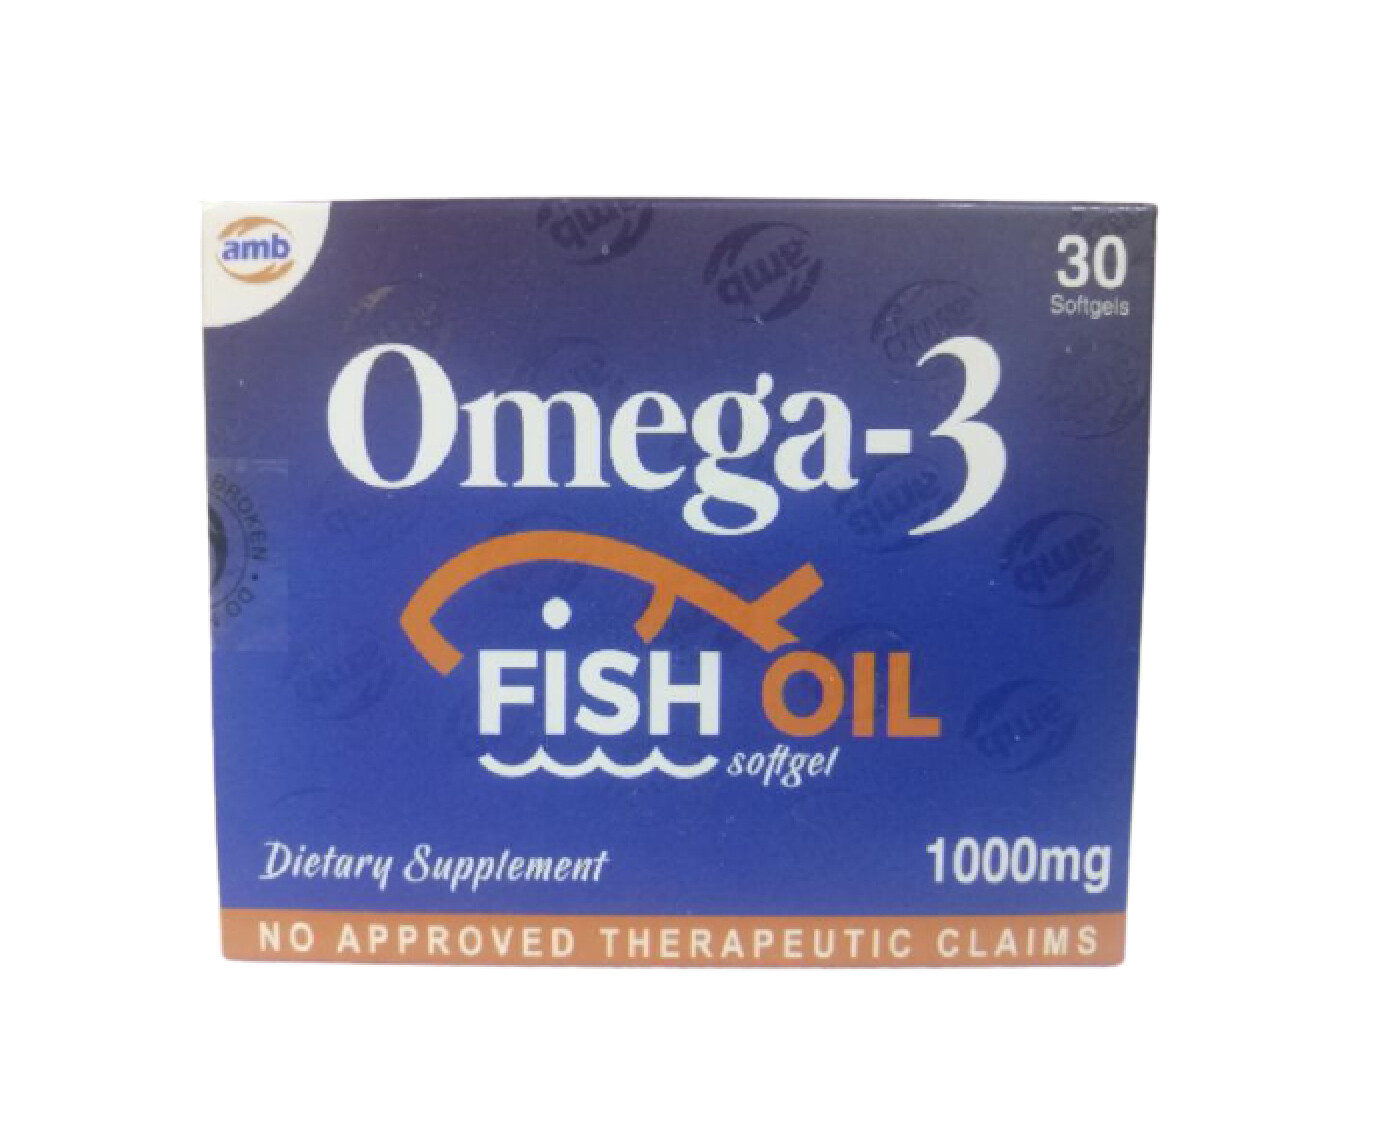 Omega 3 Fish Oil Softgel Capsule x 30's Monthly Dose Compliance Pack